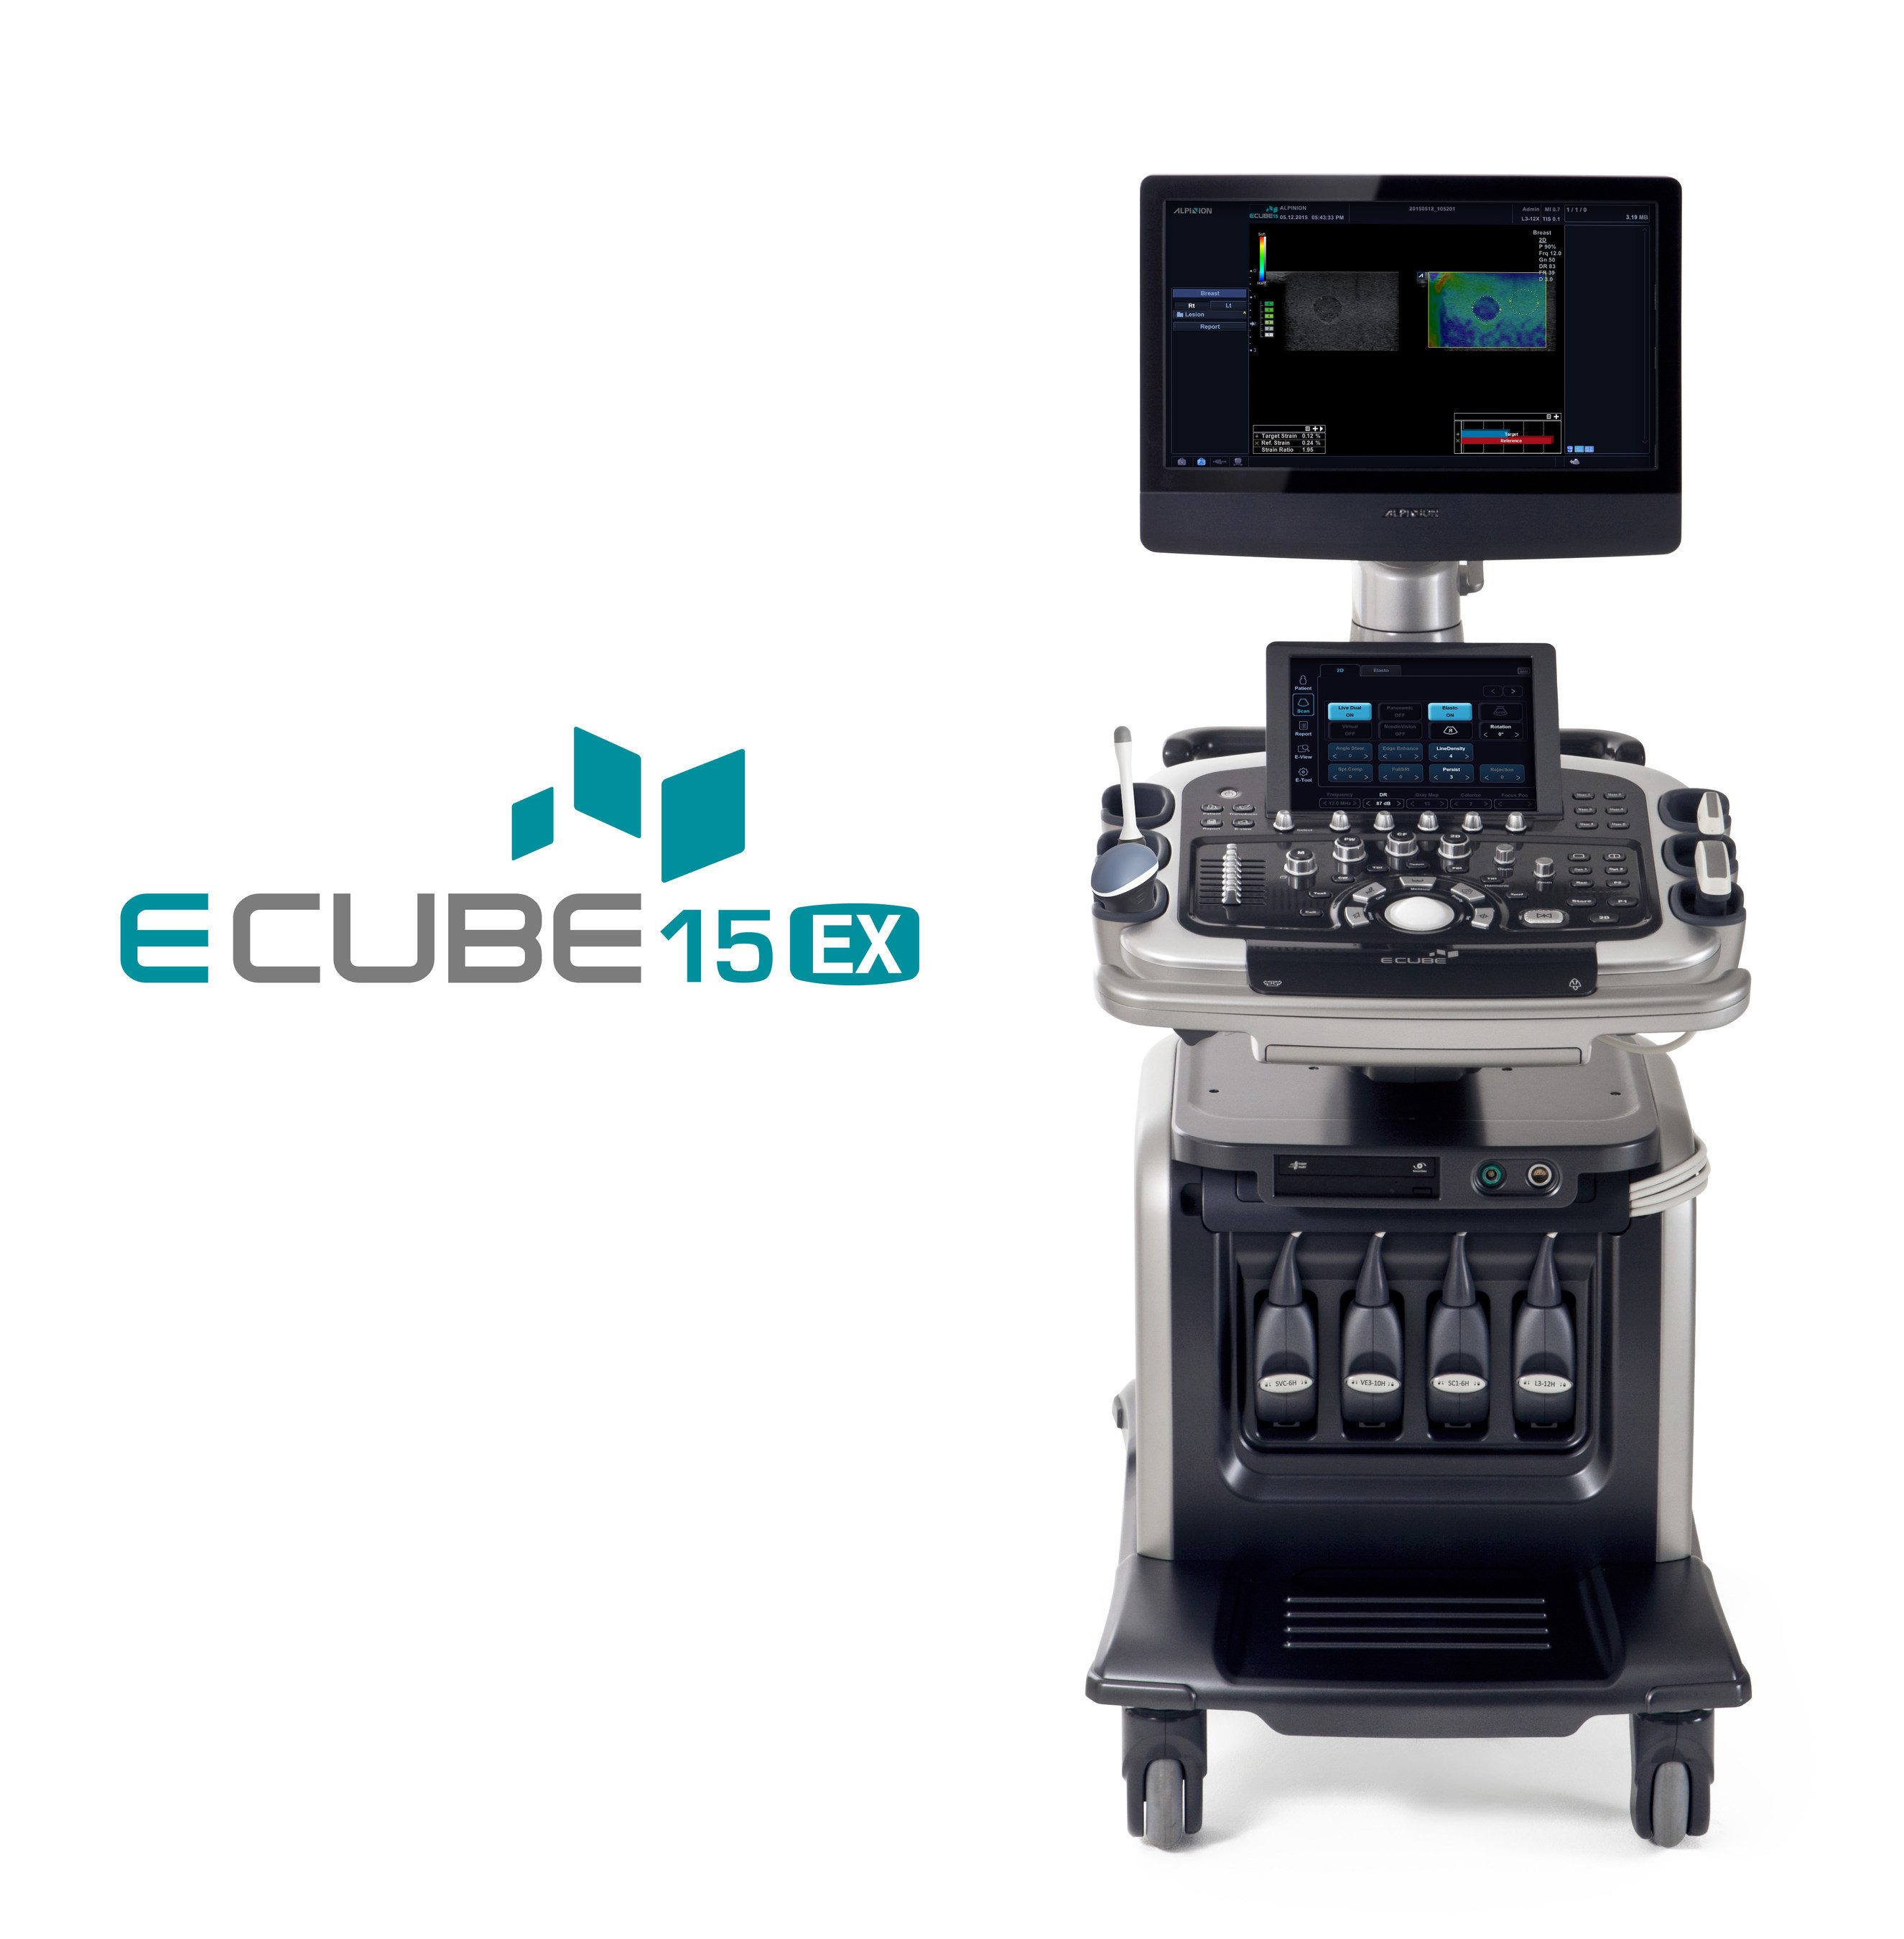 ALPINION's E-CUBE 15 EX leads the way in performance, with exceptional image quality, accurate and easy to ...